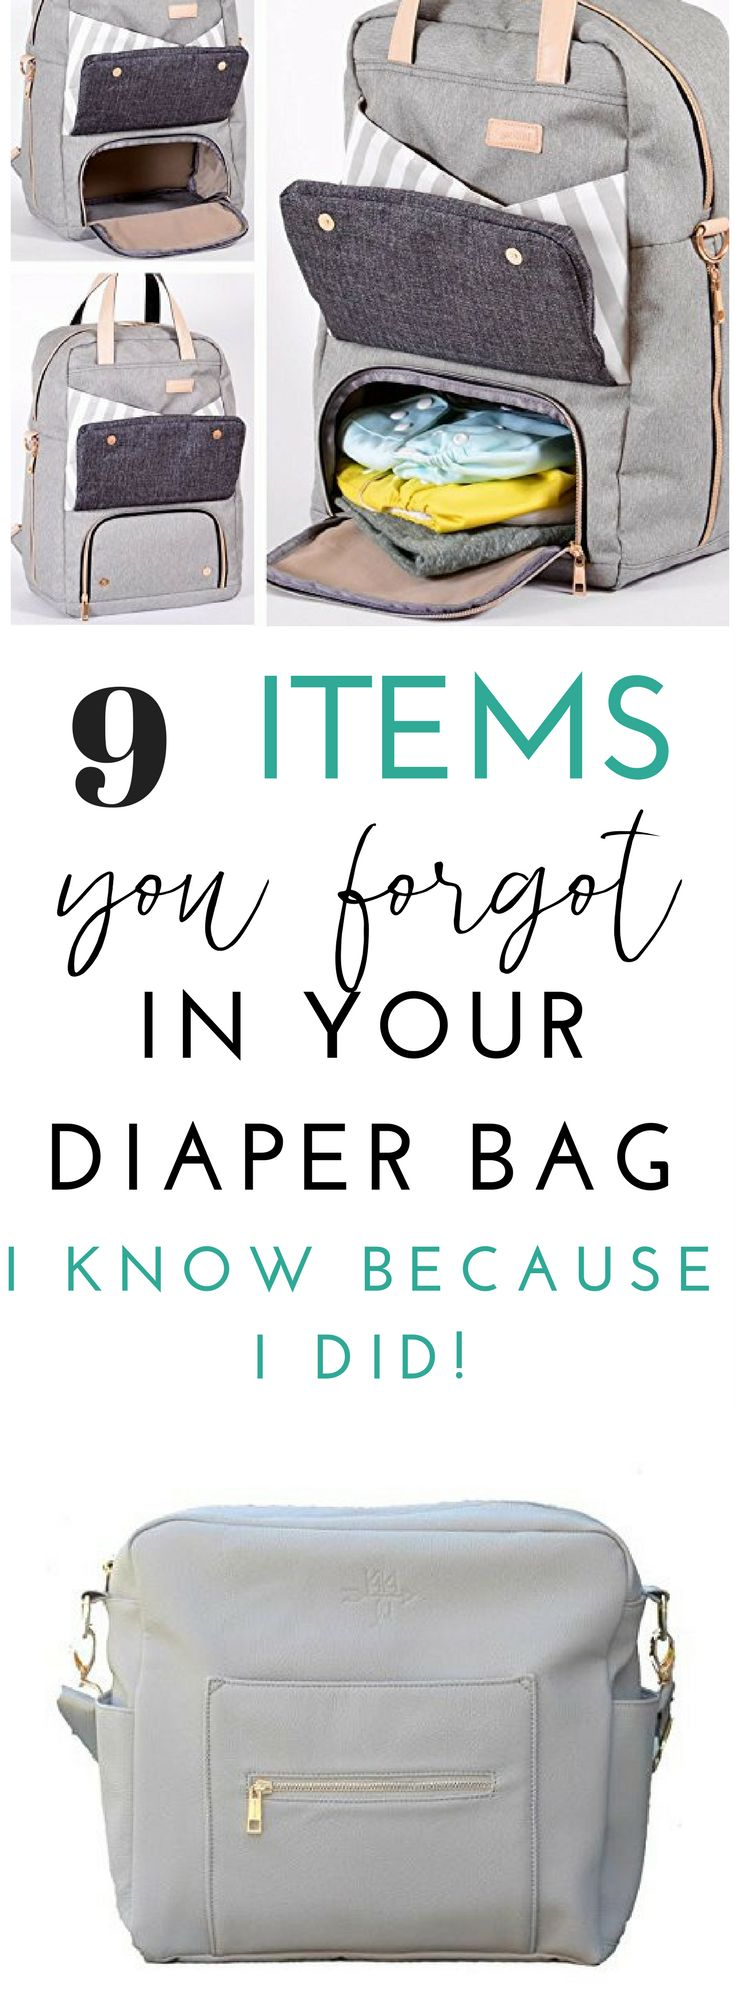 These are diaper bag essentials I have actually needed, but forgot. It isn't your average list of diapers and wipes. These are things you most likely won't think of, because I didn't!